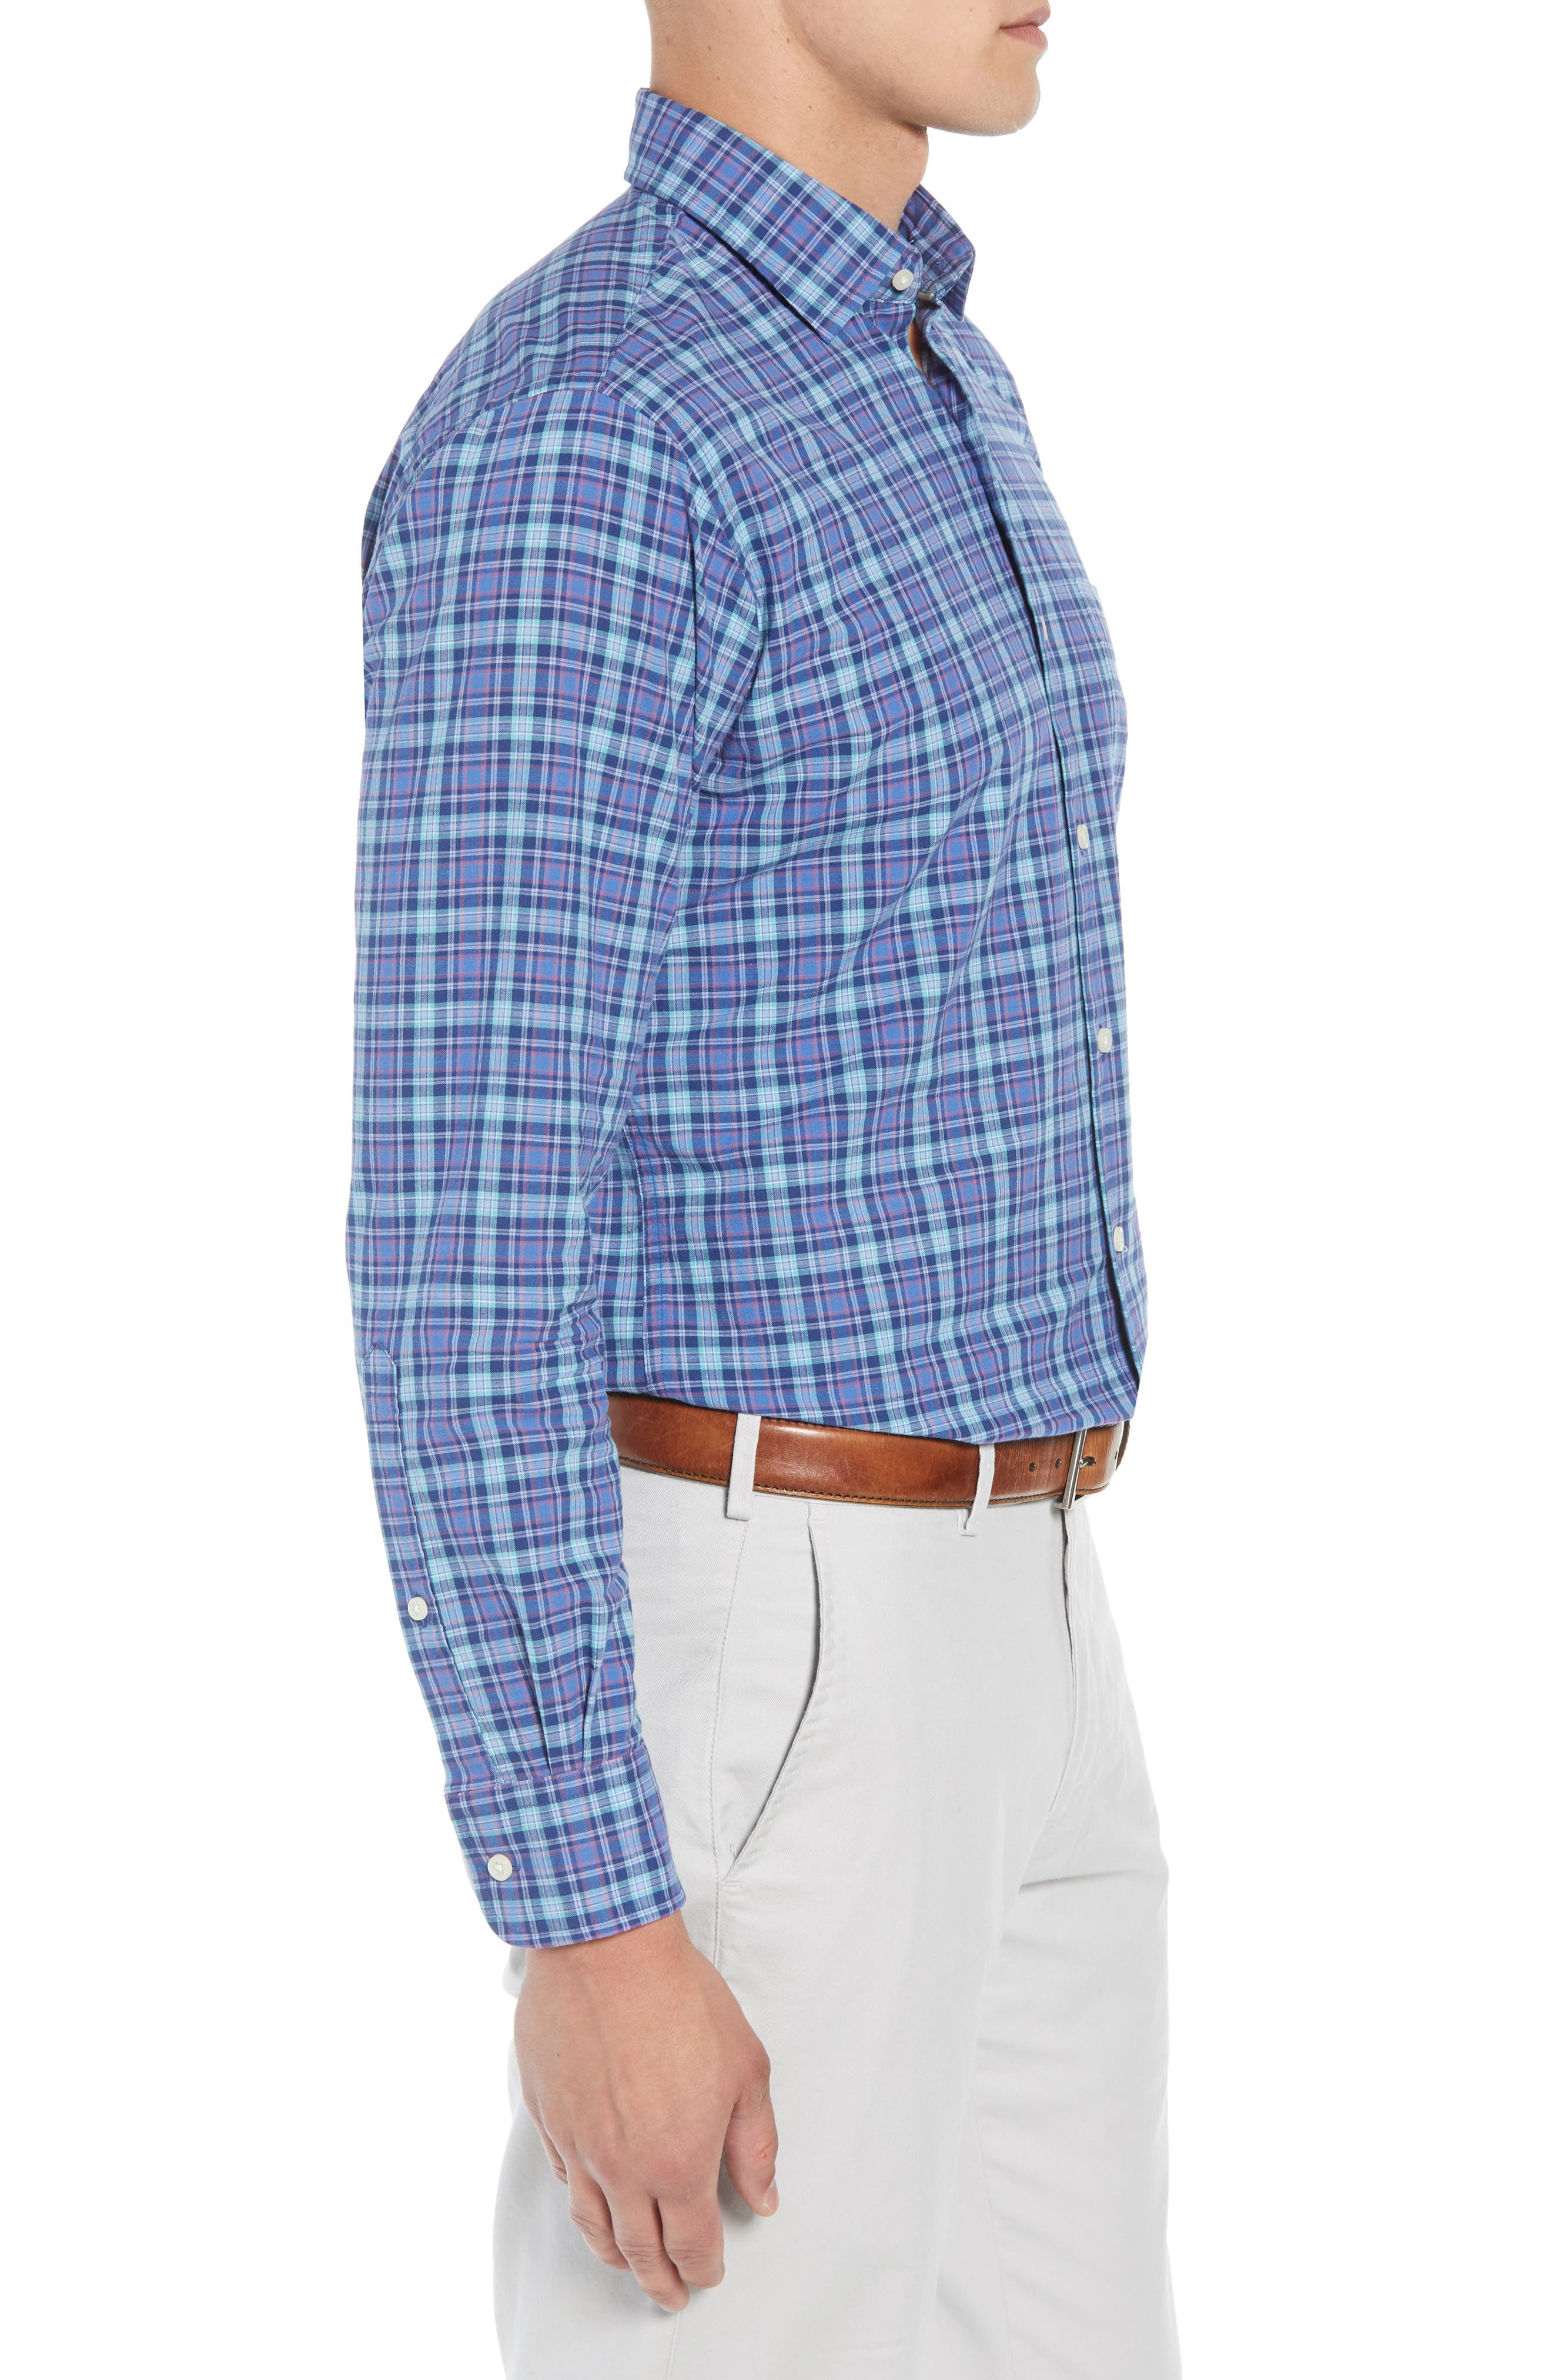 Fisherman's Wharf Regular Fit Plaid Sport Shirt,                             Alternate thumbnail 4, color,                             BLUE